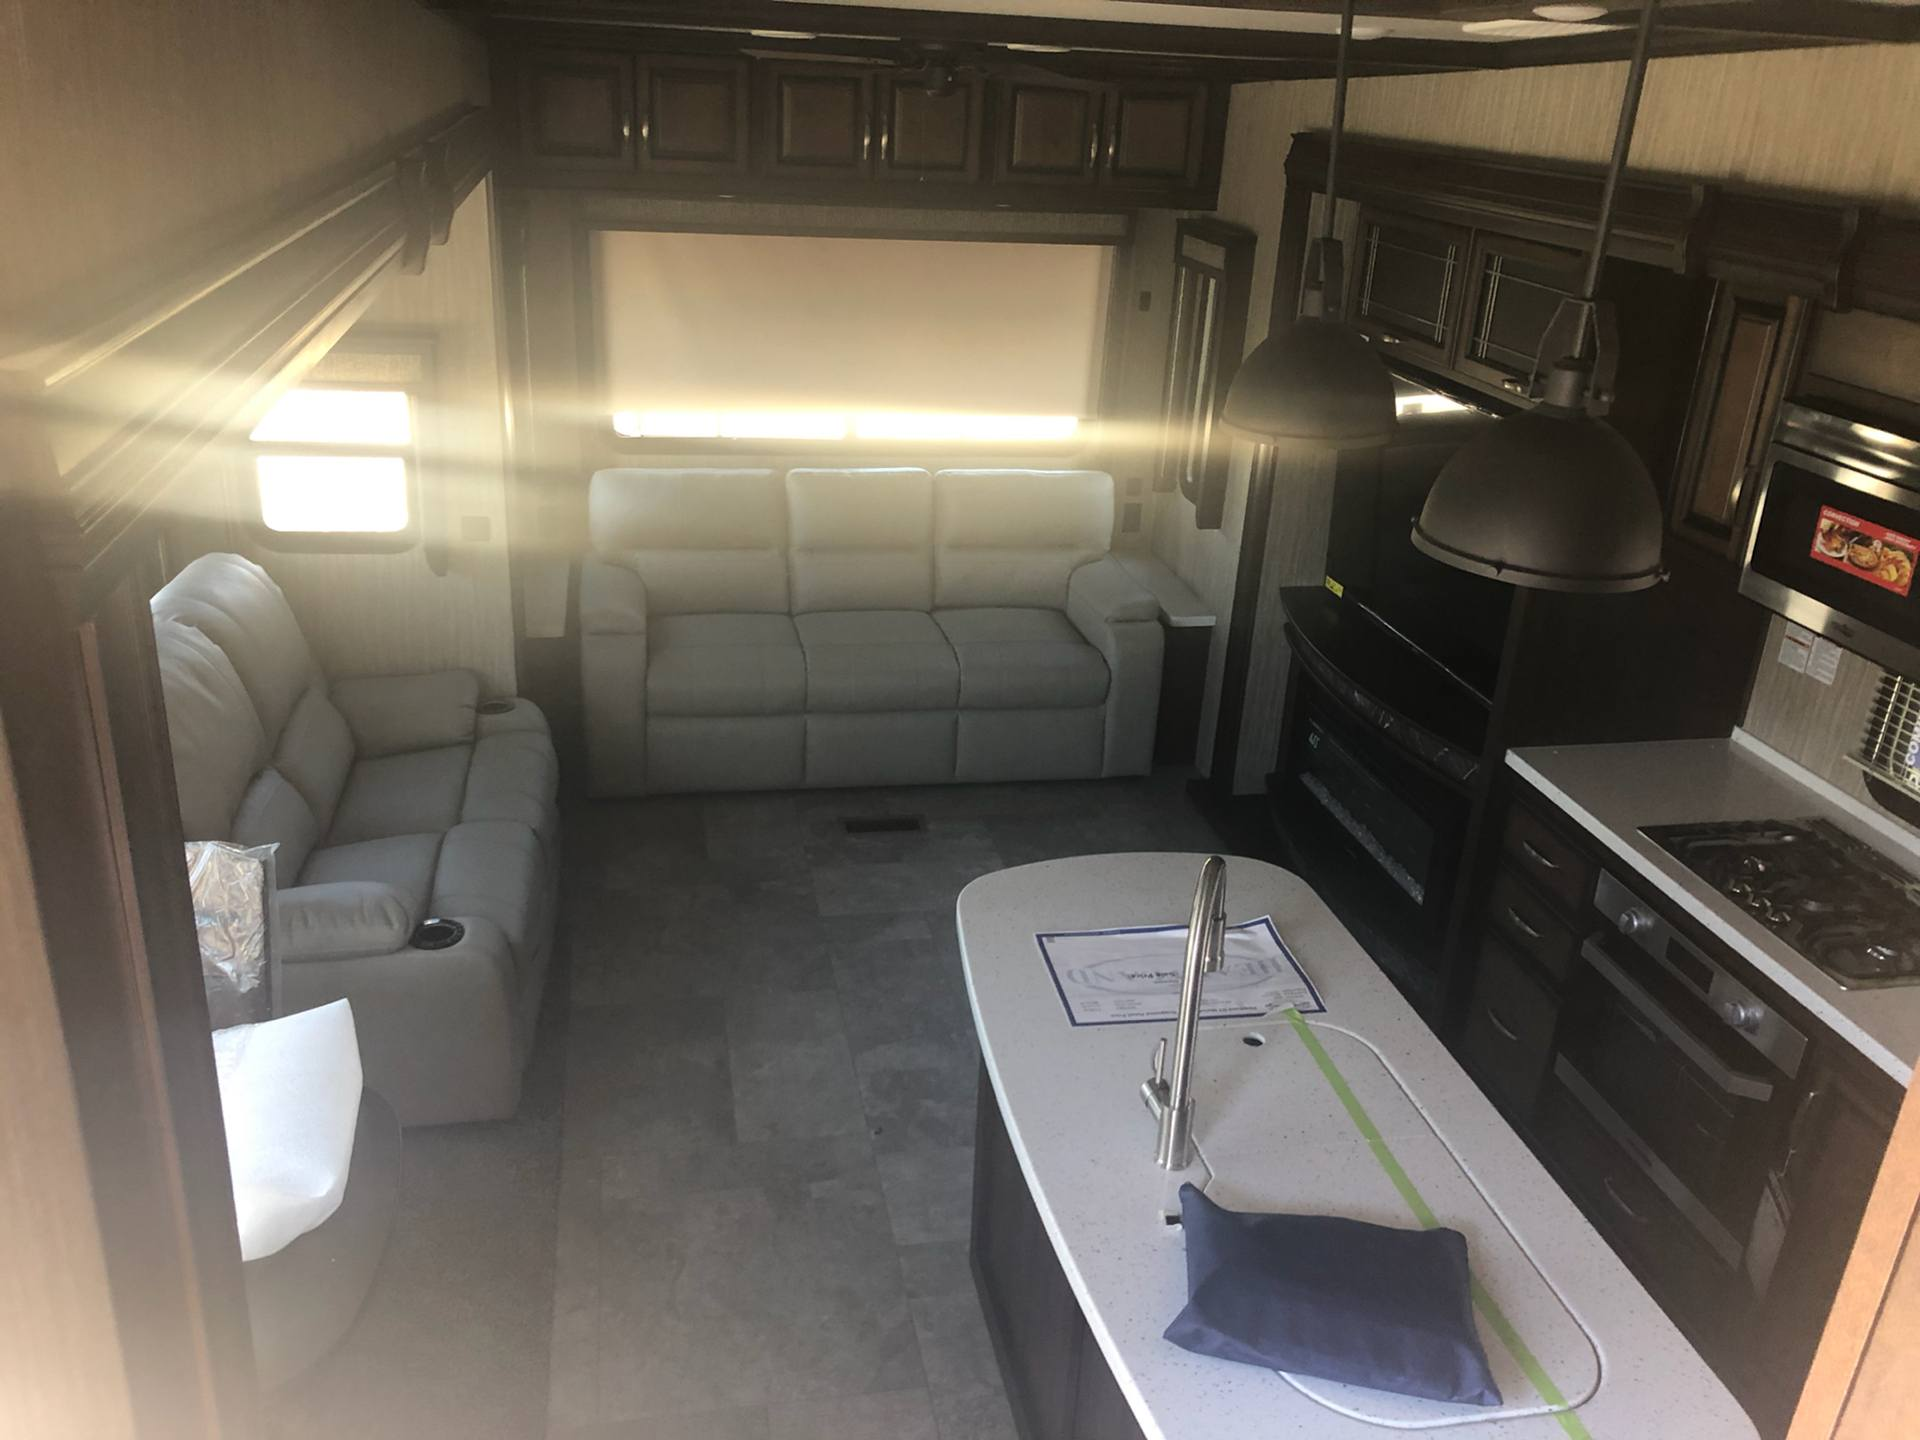 2020 Heartland Rvs BC 3155RLK in Wolfforth, Texas